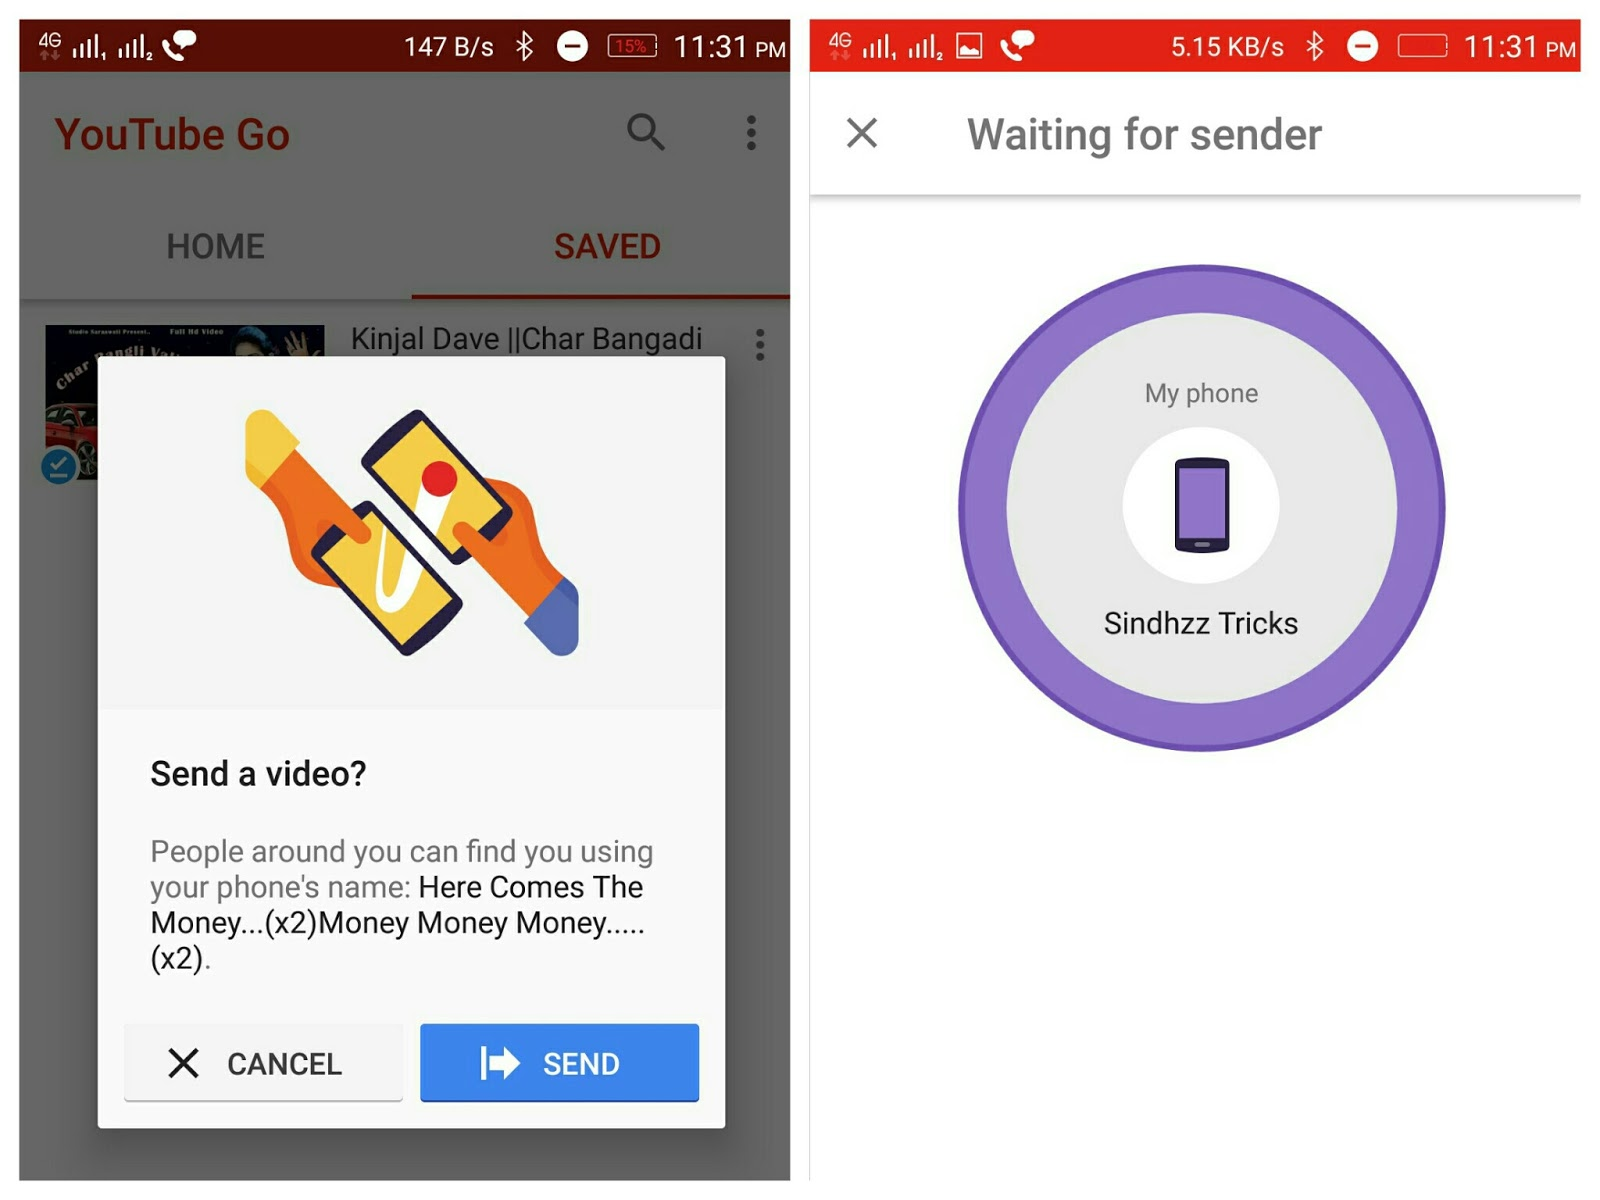 Youtube go how it works features and quick guide youtube go downloadyoutube go indiayoutubego free downloadnew youtube go ccuart Image collections